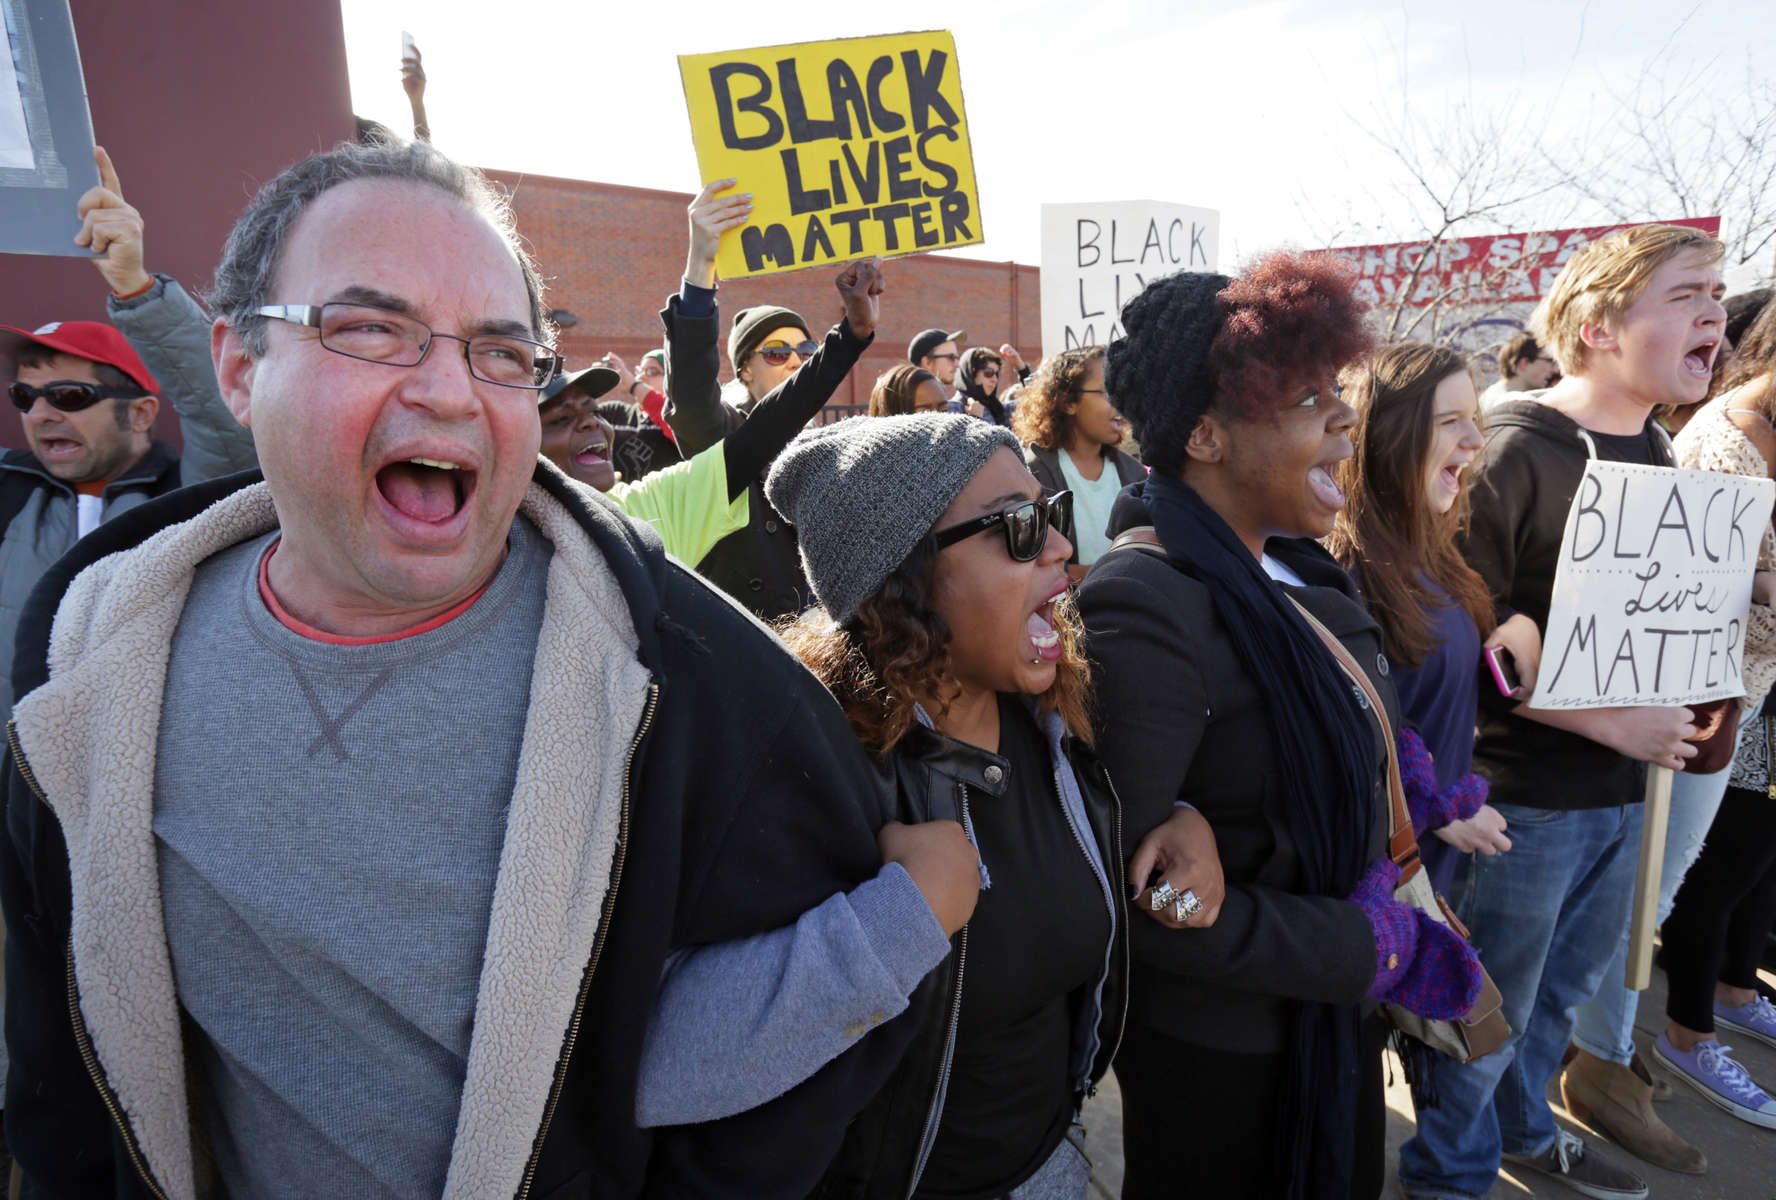 {quote}Black lives matter{quote} shout protesters Daniel Conford (left), Tracy Parks, Ashley Carter, Judy Lucas and Luke Davis(right) as they all link arms and face off to police at during a demonstration along Eager Road on Saturday, Nov. 29, 2014.Photo By David Carson, dcarson@post-dispatch.com